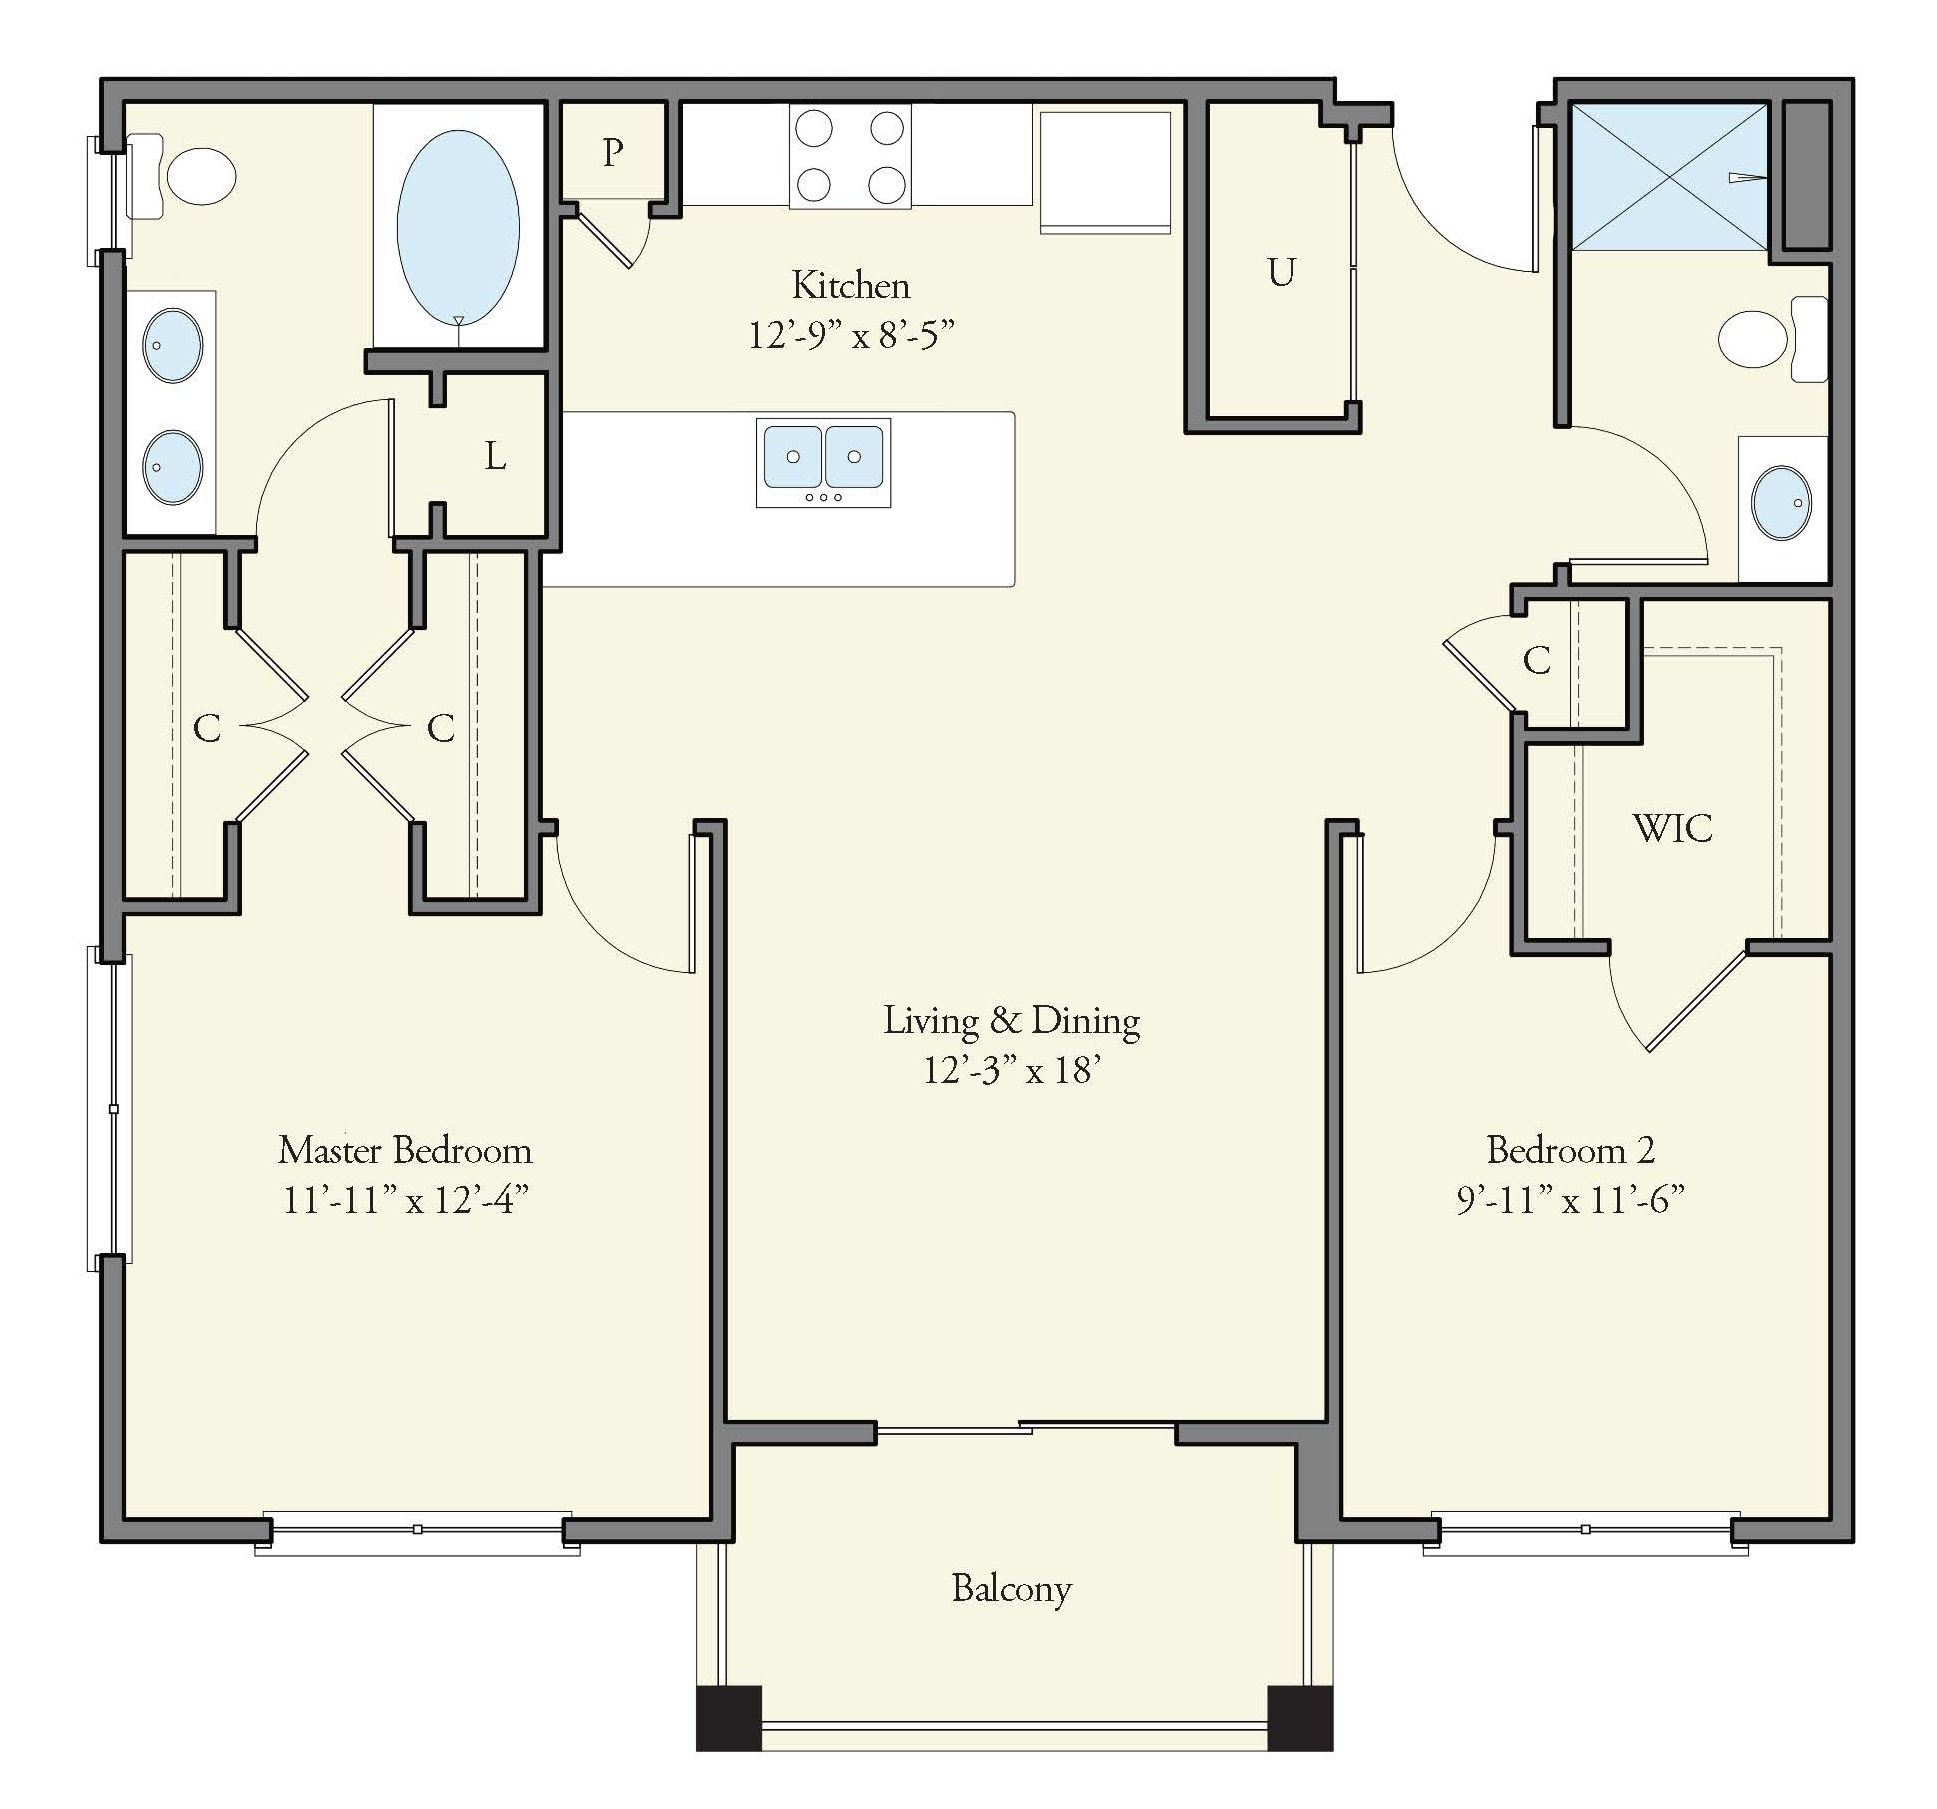 Floorplan - Shelly image